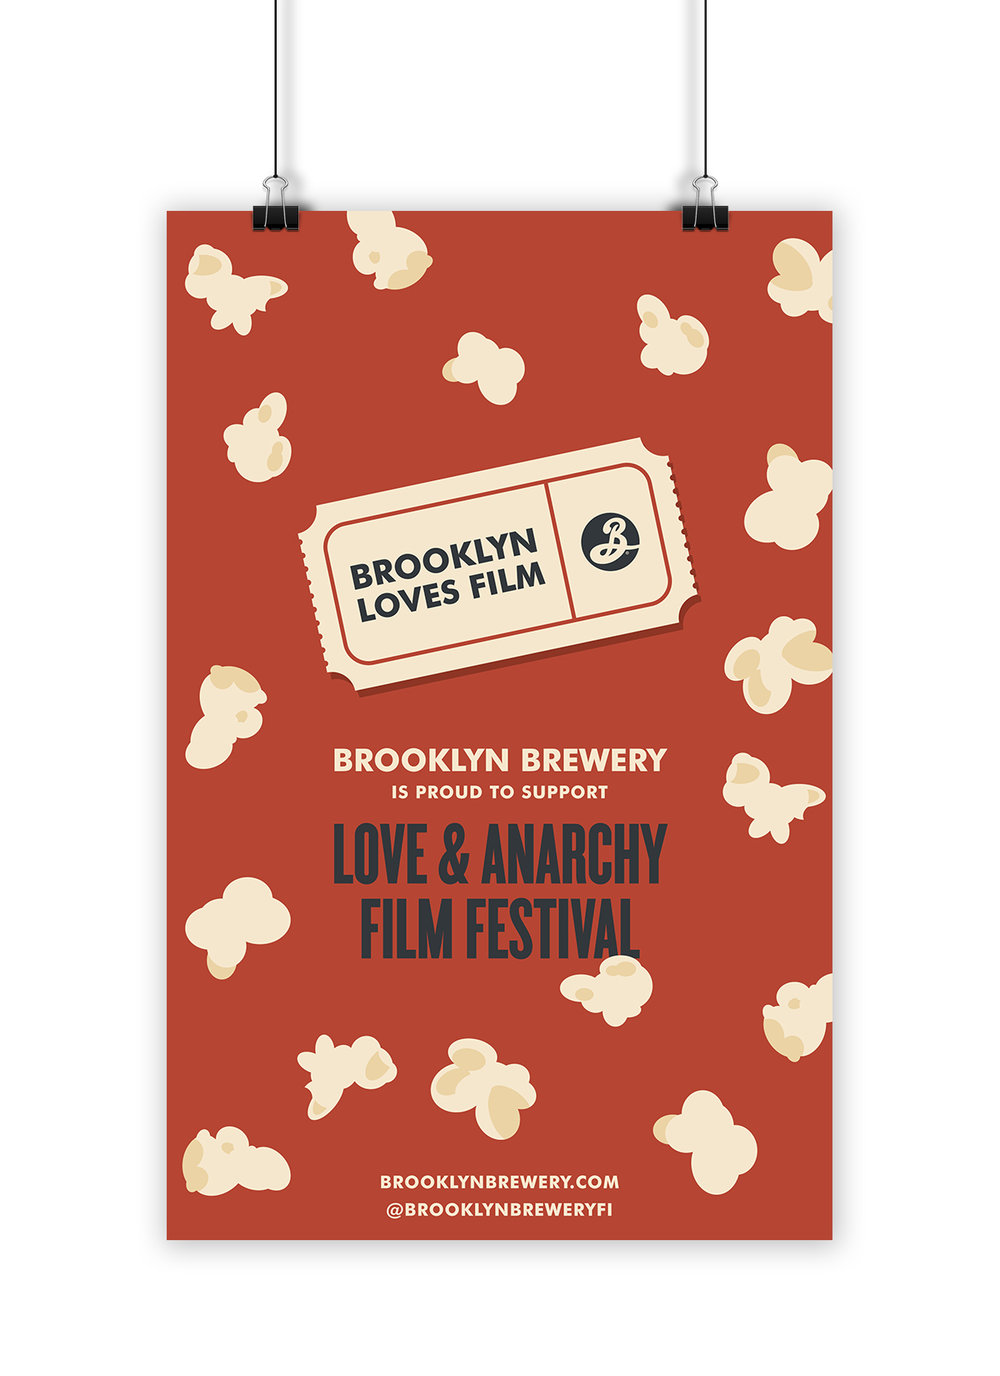 Branding identity and print poster design for Brooklyn Brewery supporting a Finnish film festival.